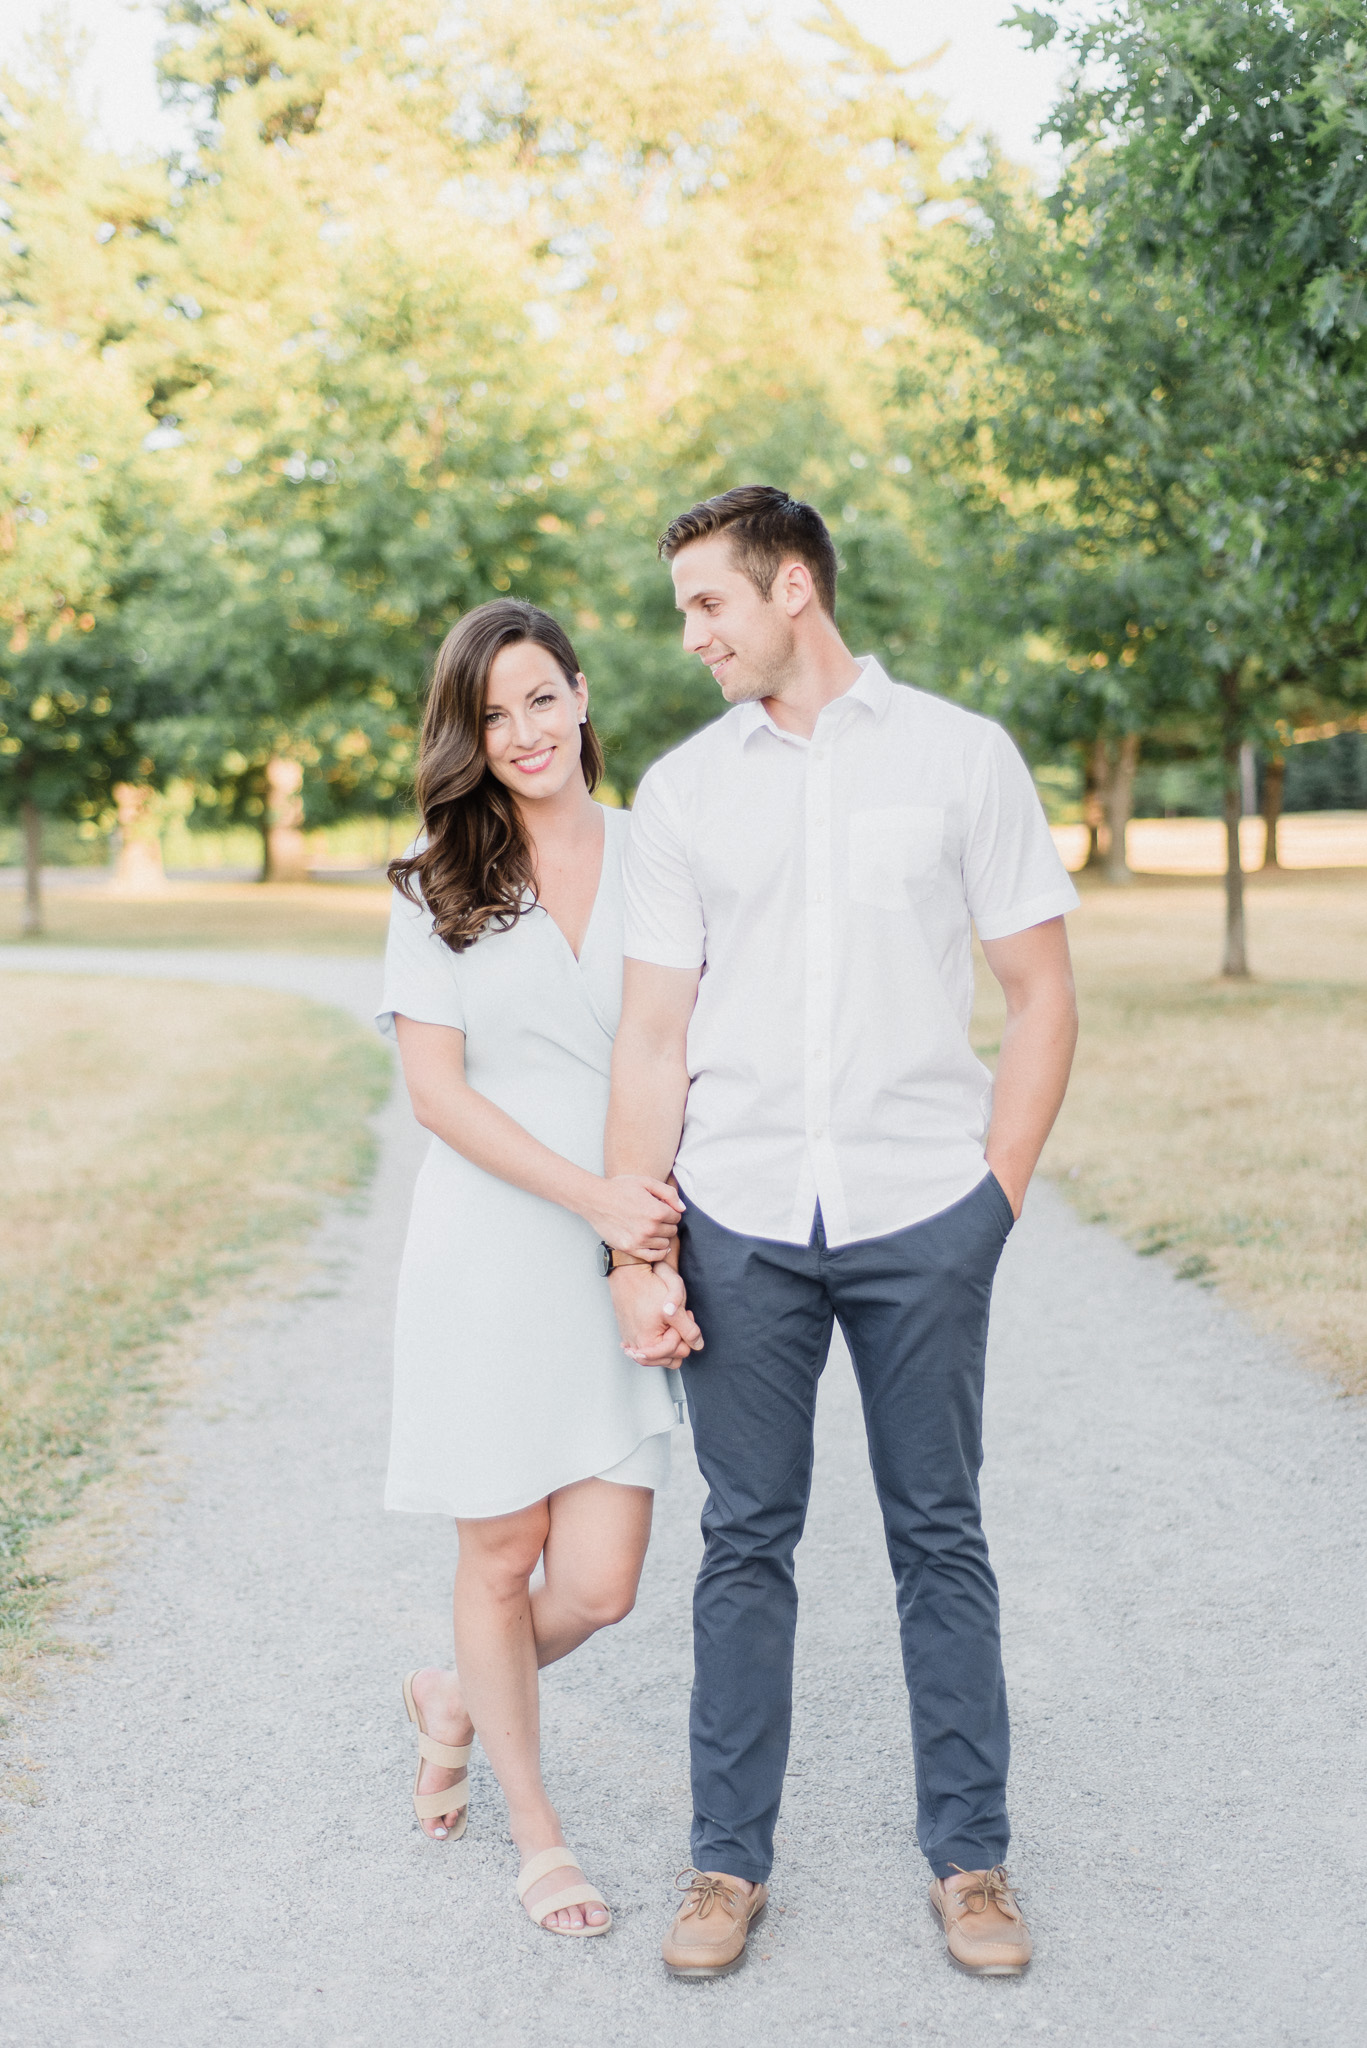 Bright and airy engagement photos by Jenn Kavanagh Photography.